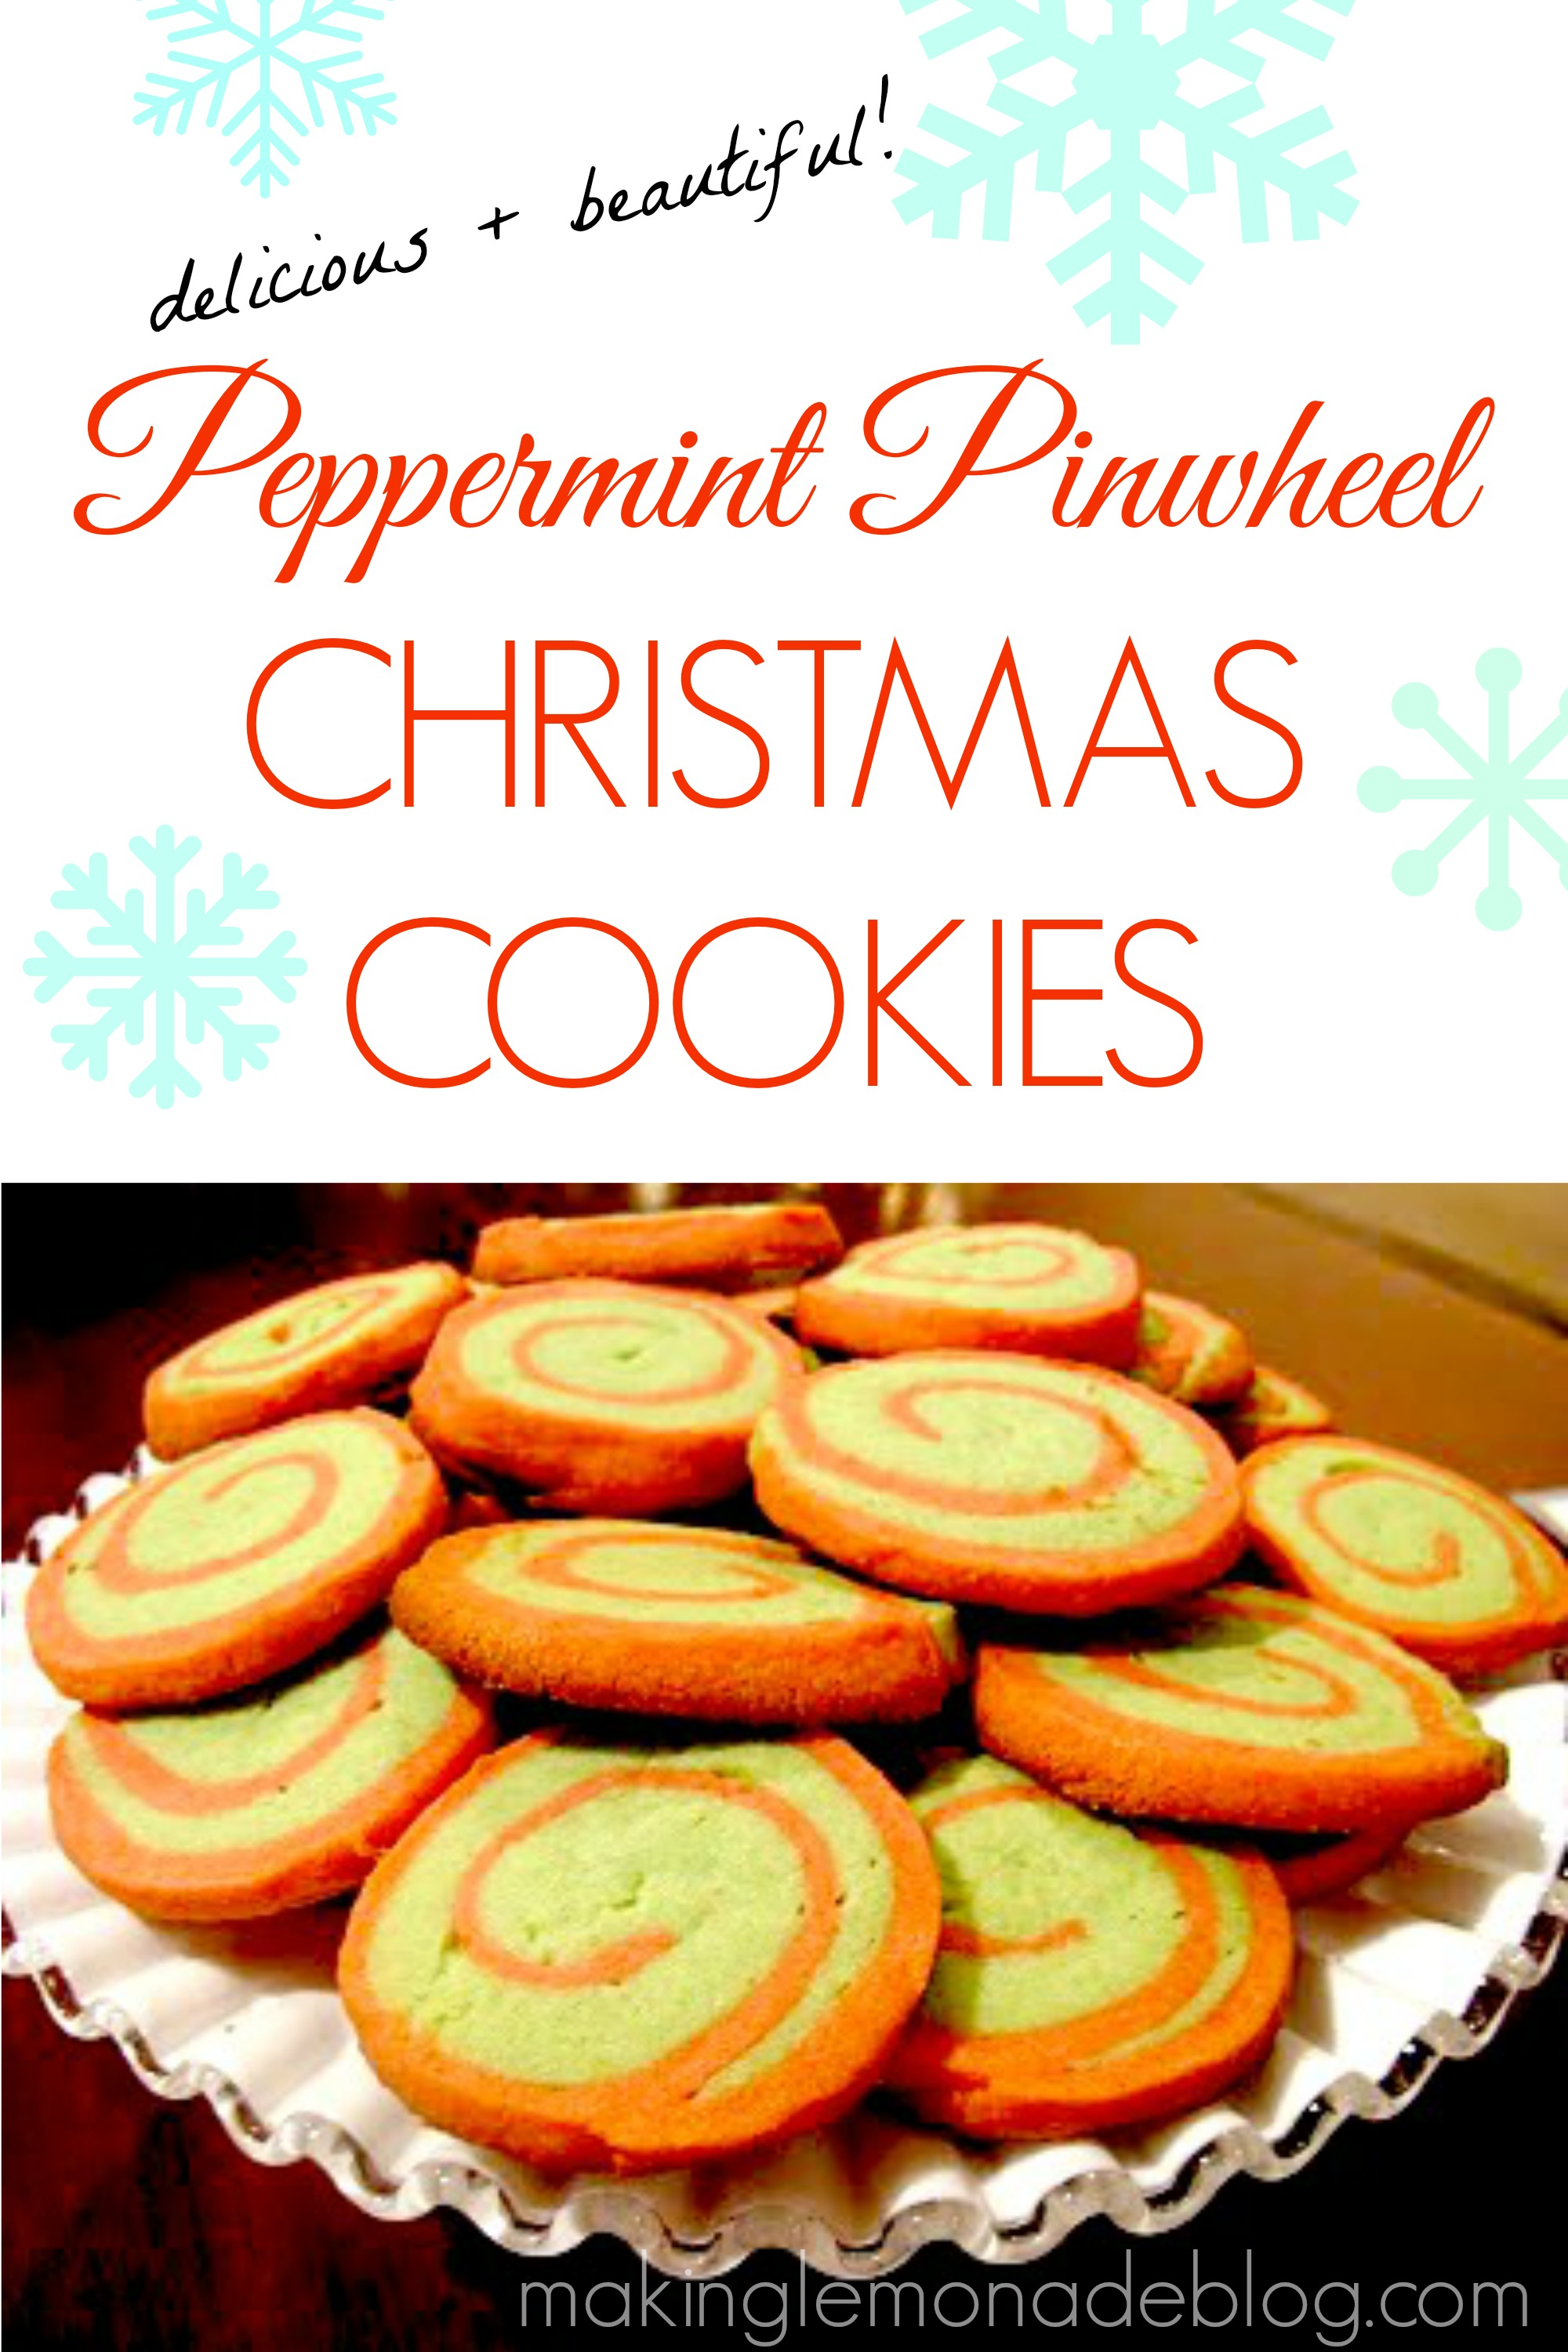 Peppermint Pinwheel Christmas Cookies